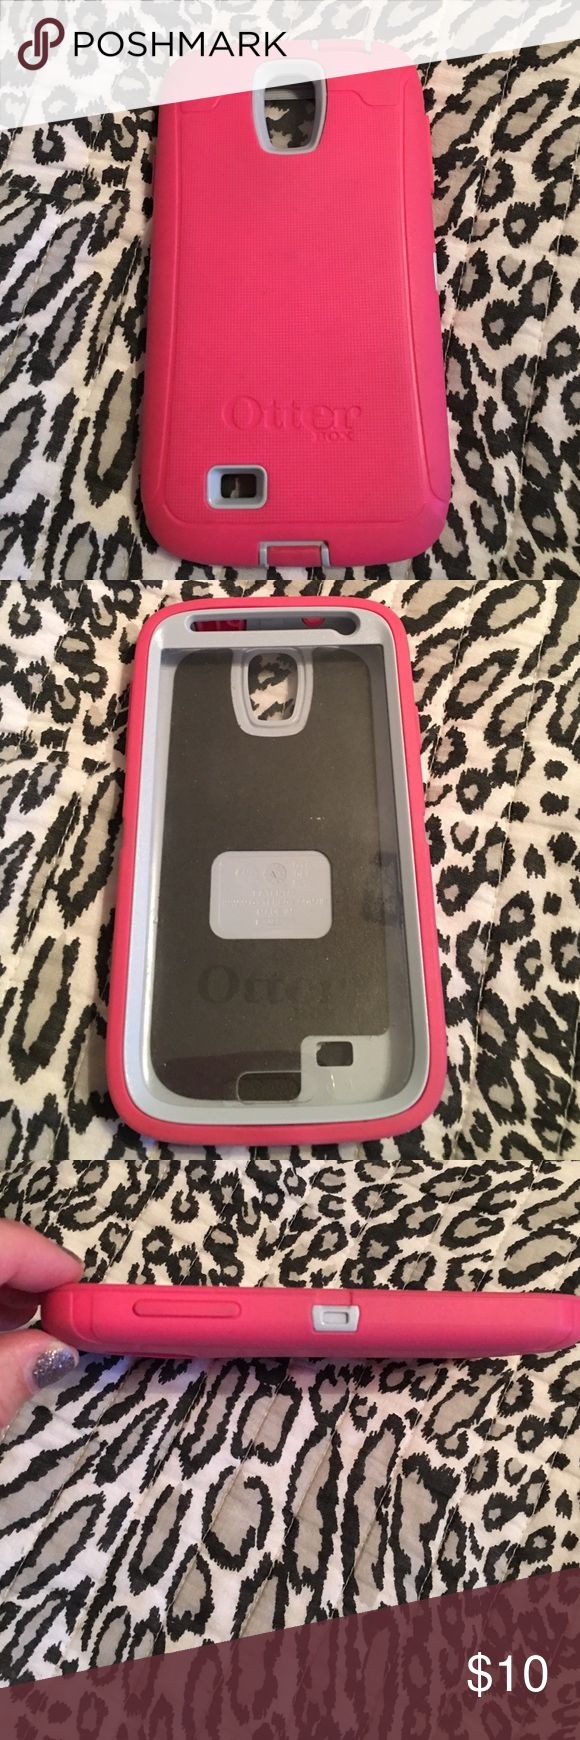 Otterbox Samsung S4 Case Good Condition Pretty Pink Color OtterBox Other